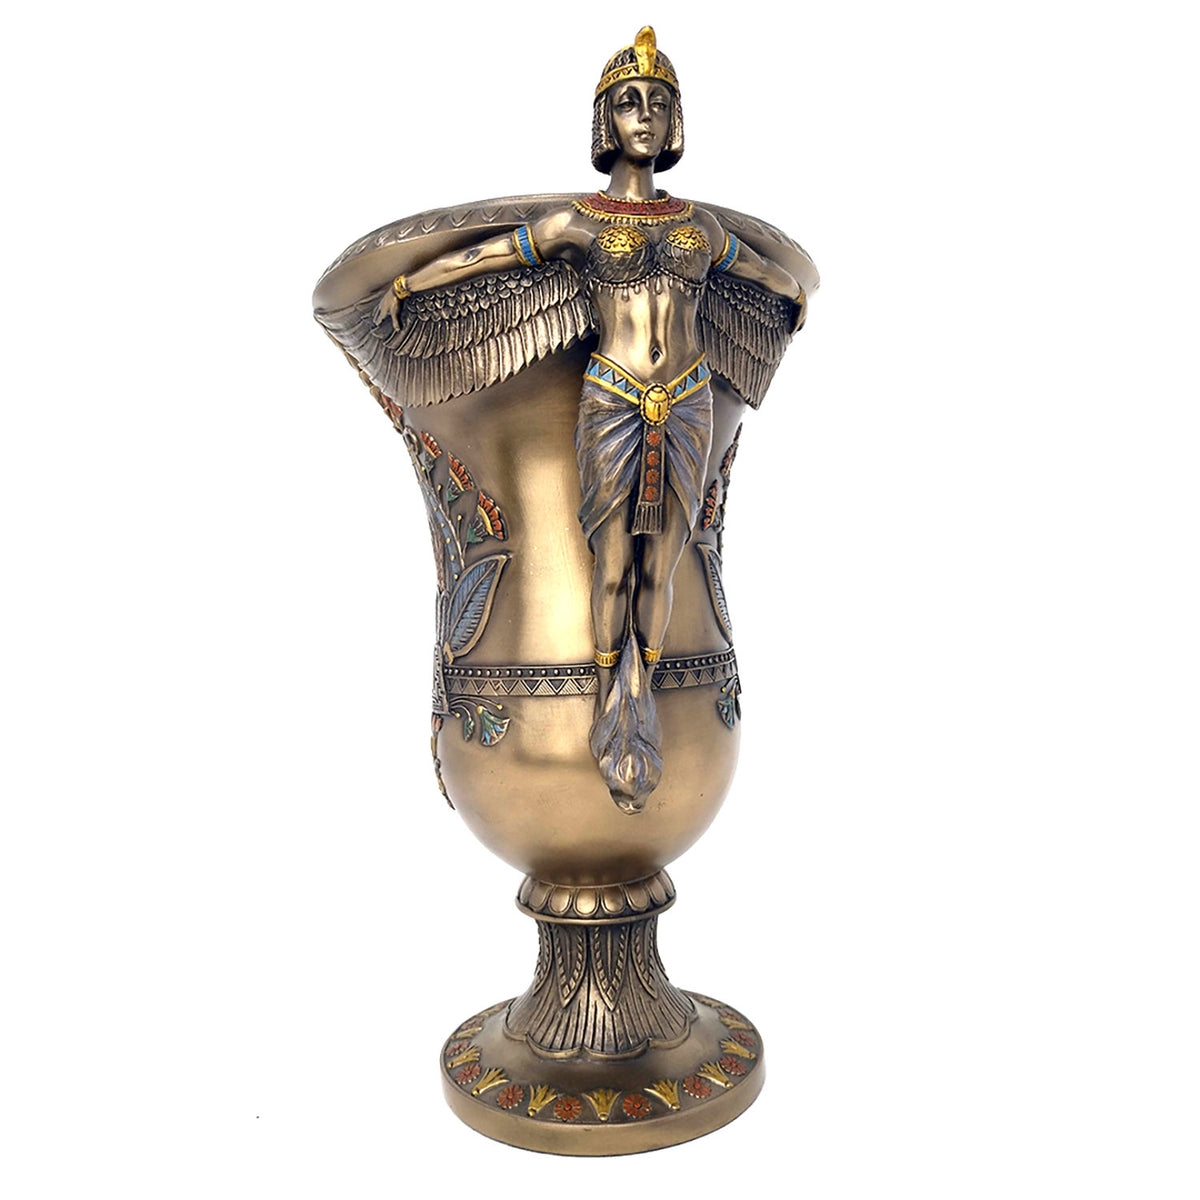 Egyptian Goddess Vase - Ancient Egyptian Art Deco Style Goddess Standing Vase with Hand-painted detail